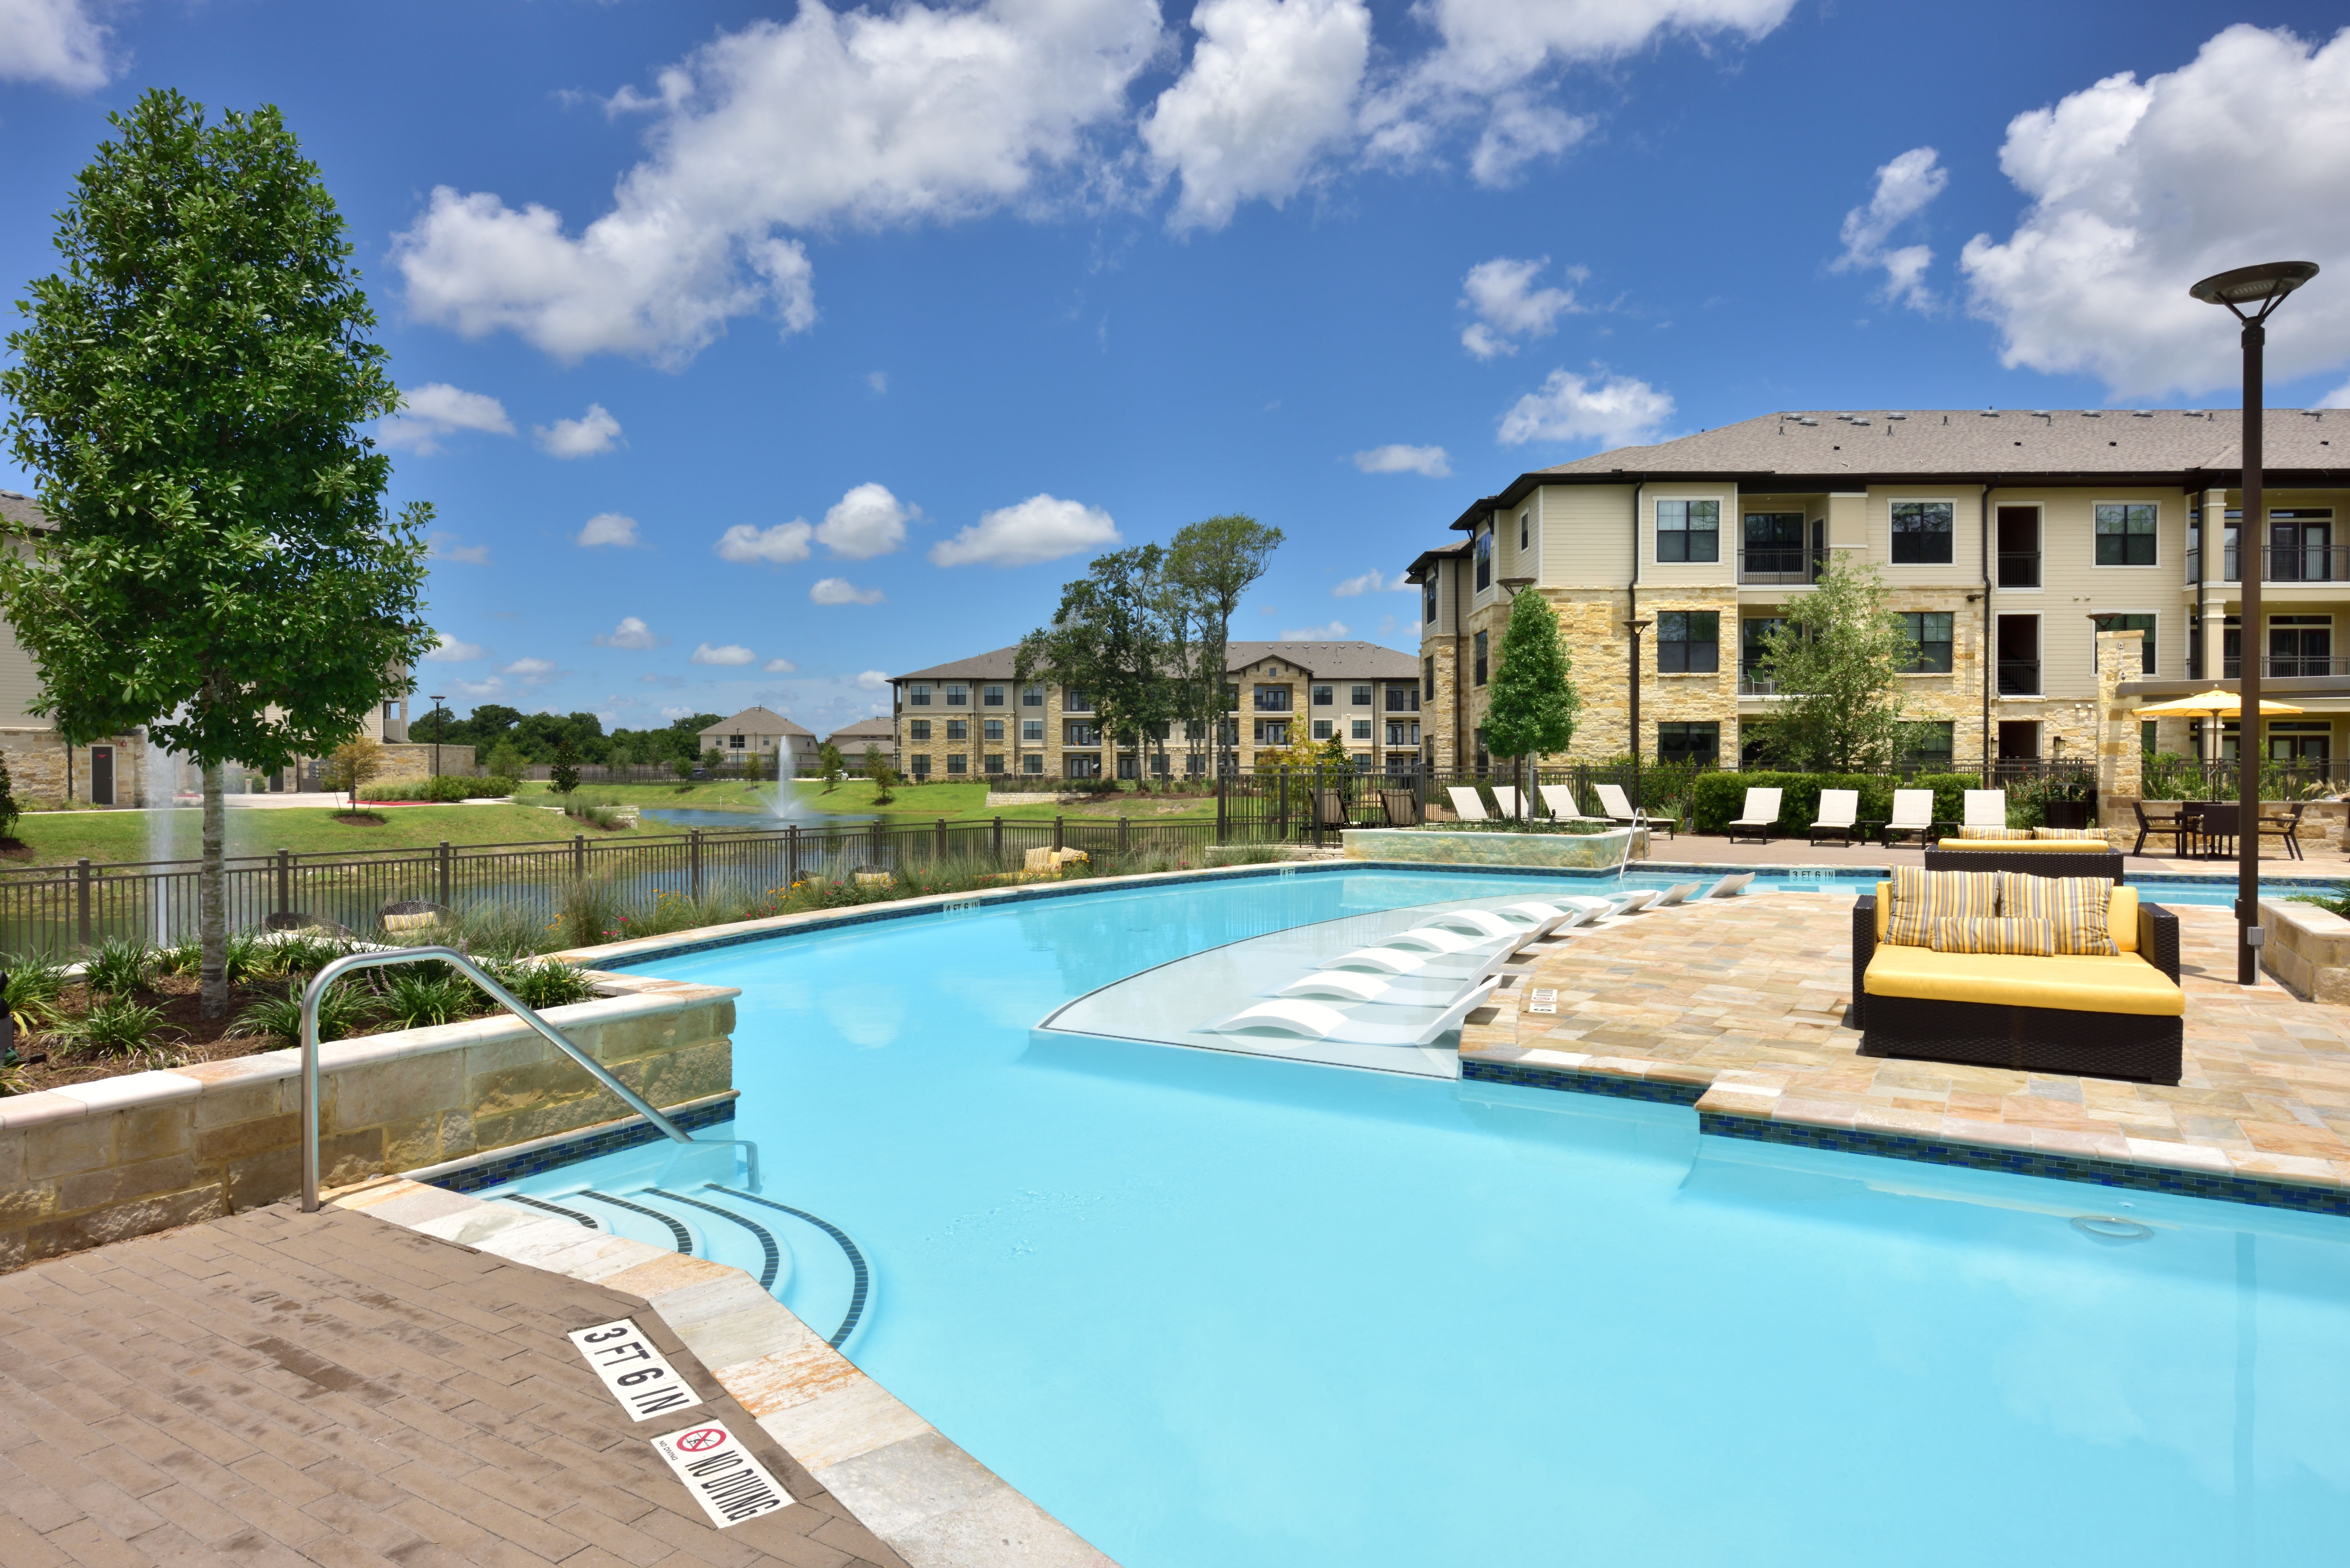 Resort style pool with lounge chairs and tables on pool deck at Olympus Falcon Landing in Katy, TX